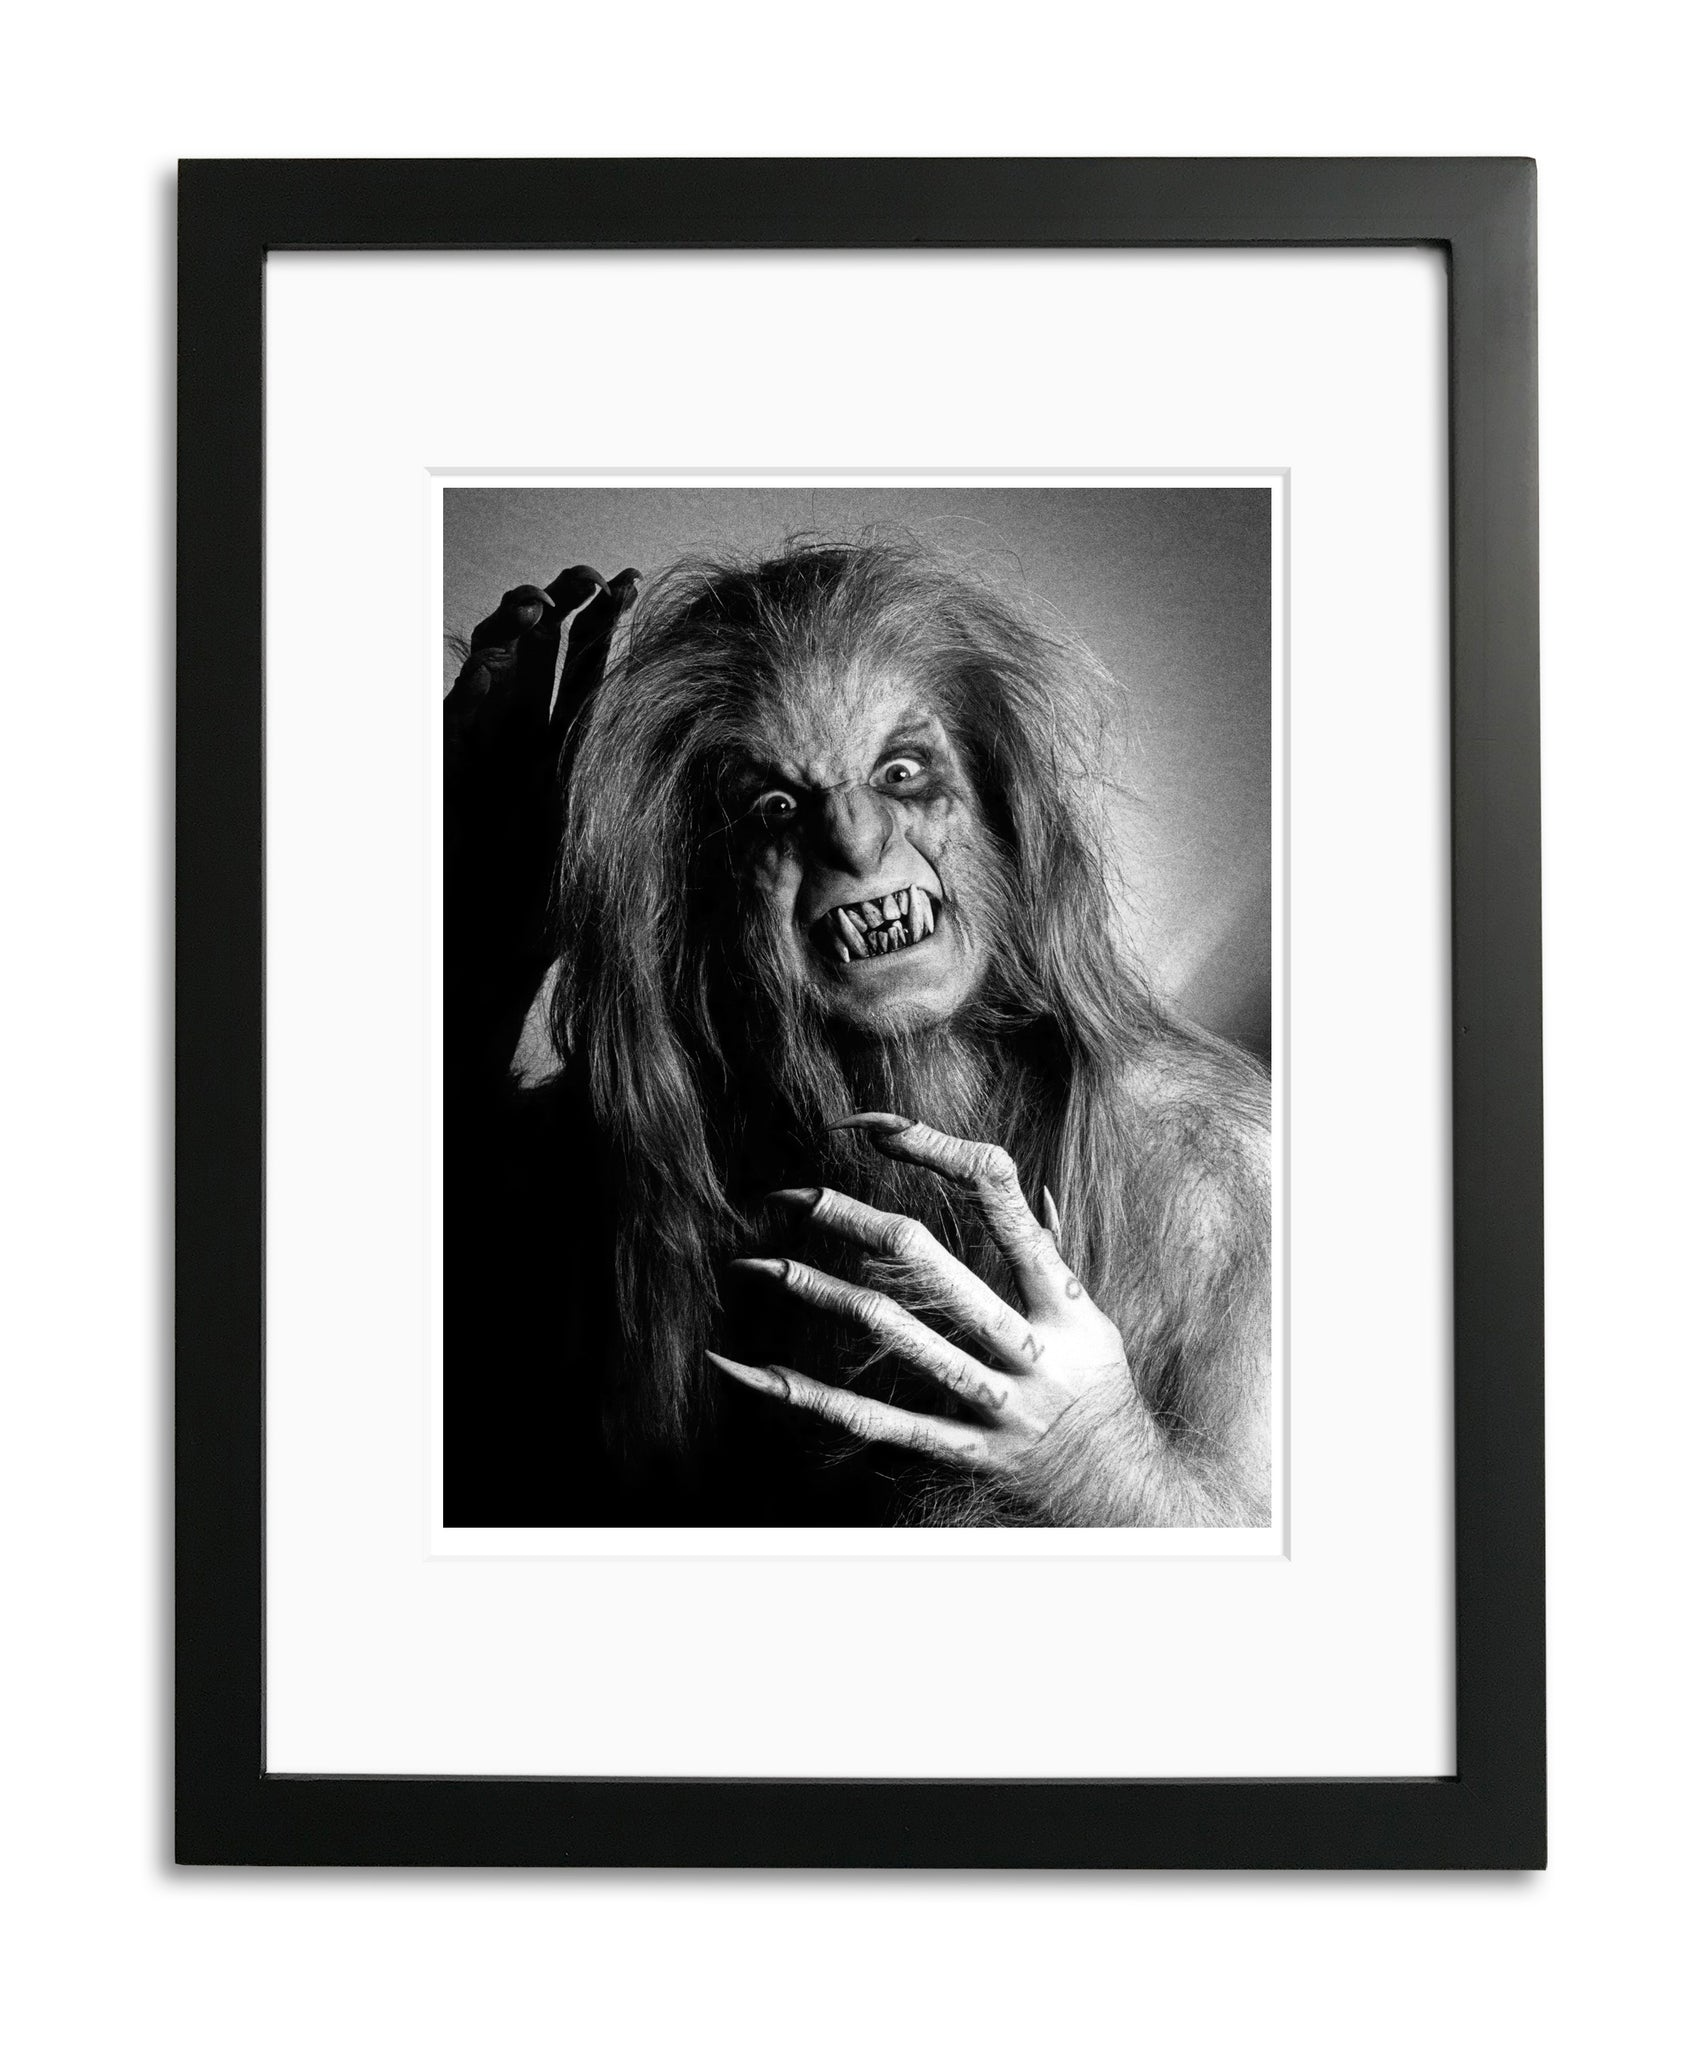 Ozzy Osbourne, Bark at the Moon Limited Edition Print